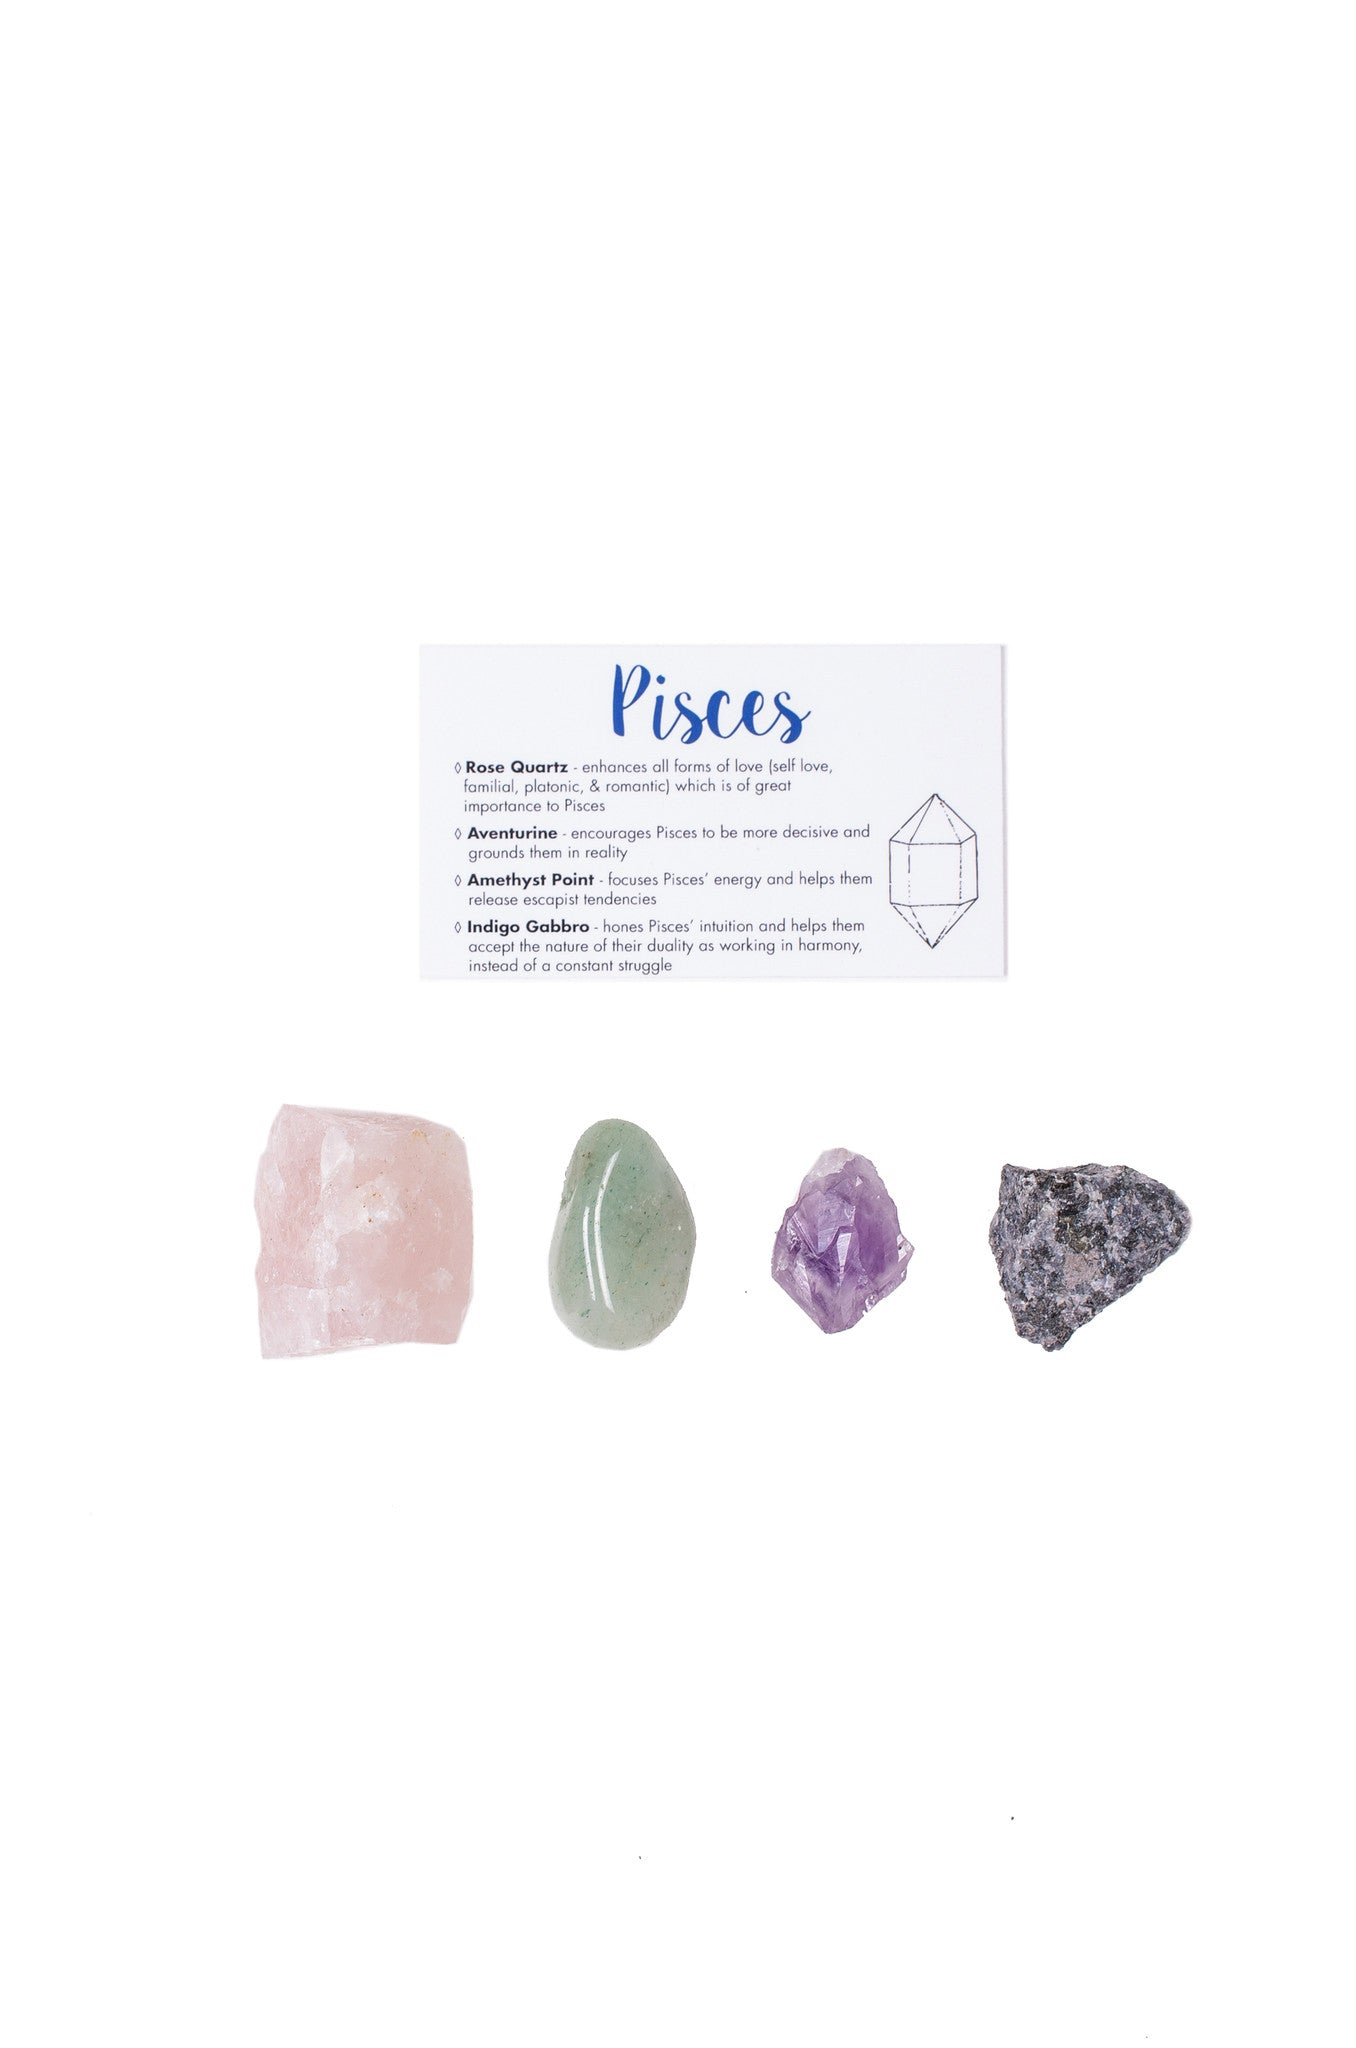 pisces crystal set rose quartz aventurine amethyst point indigo gabbro